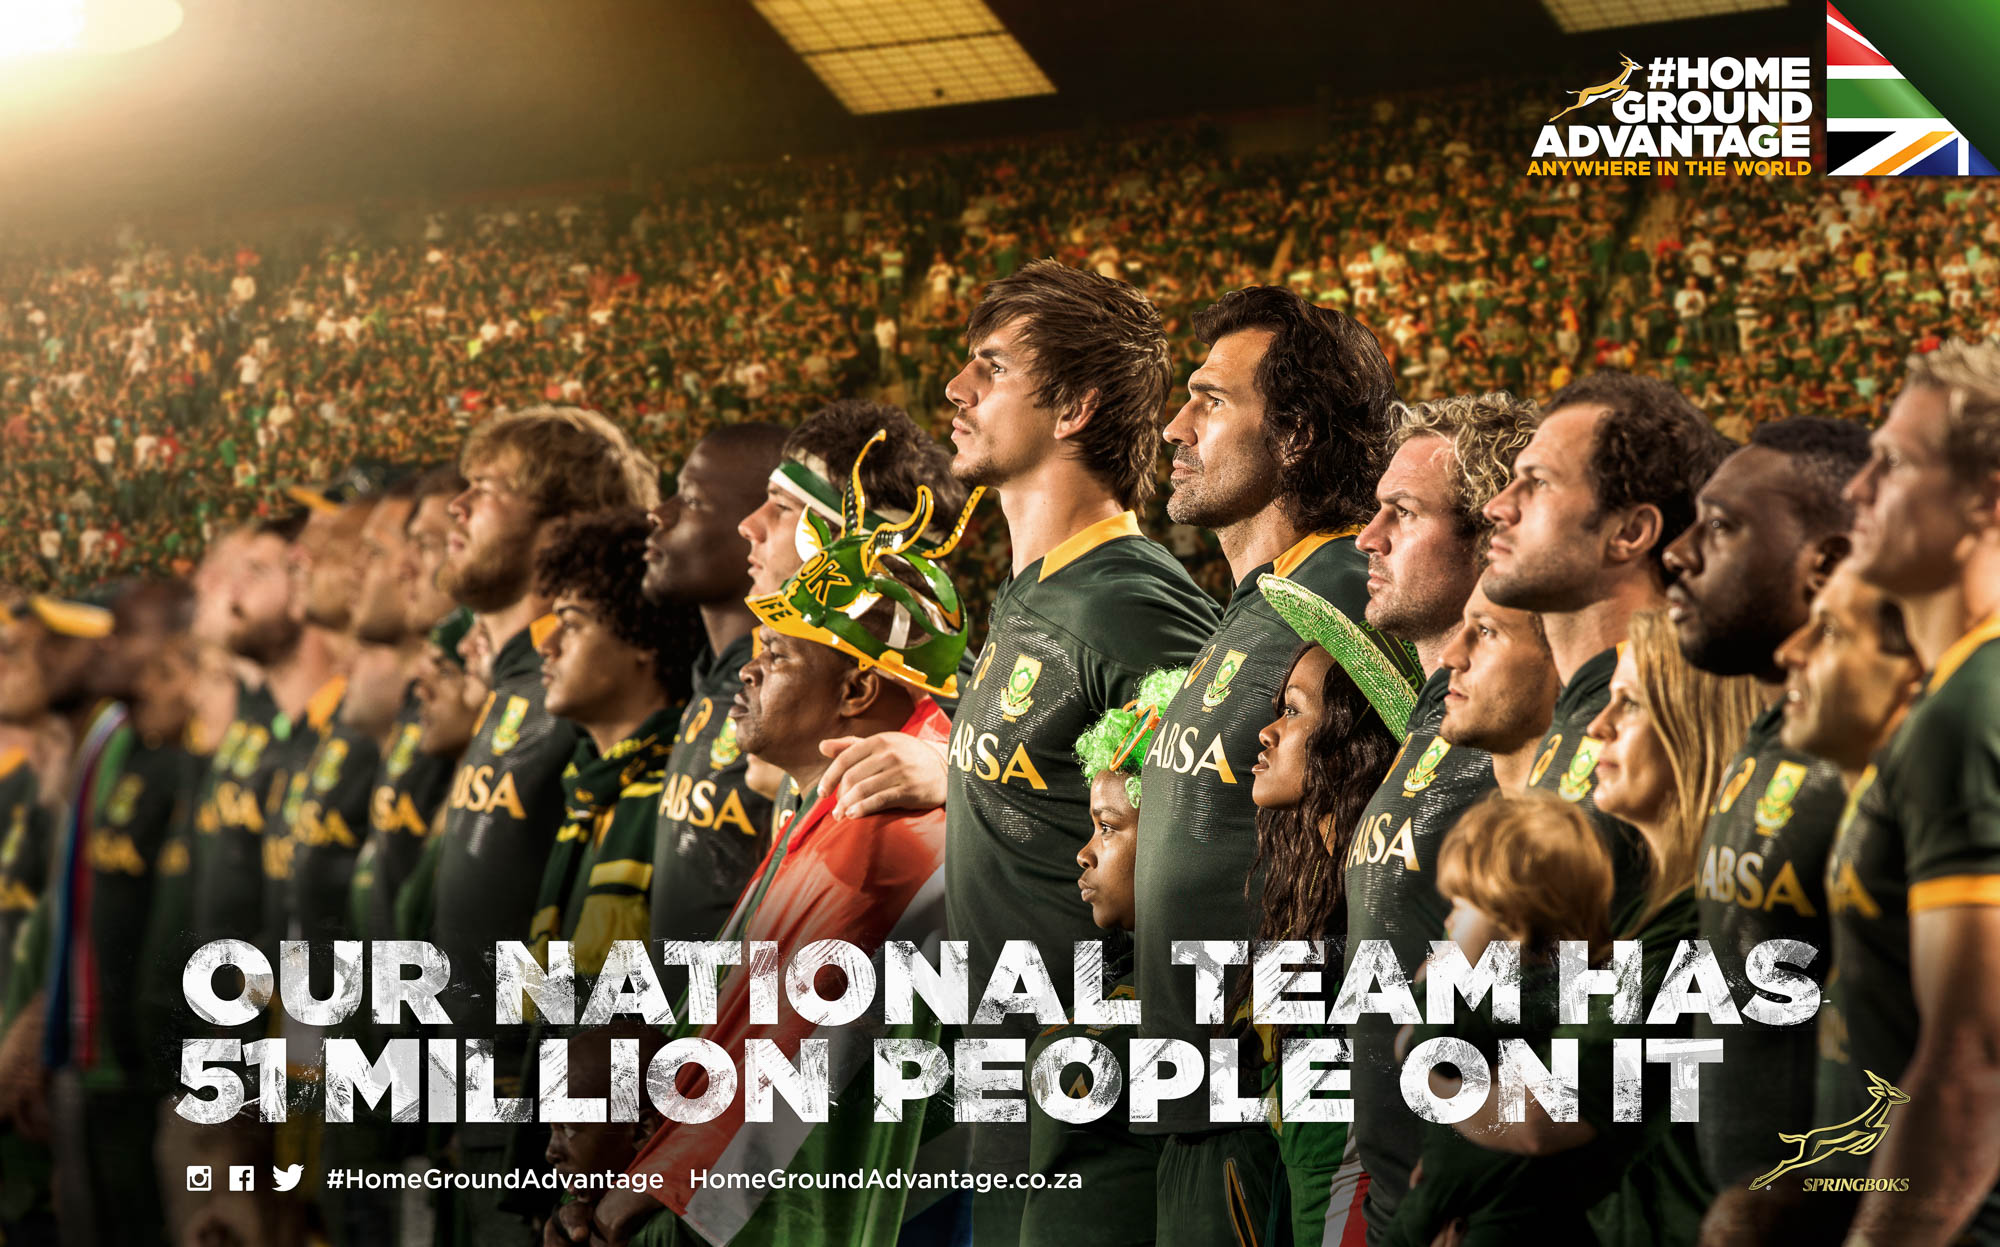 Our National Team Has 51 Million People On It